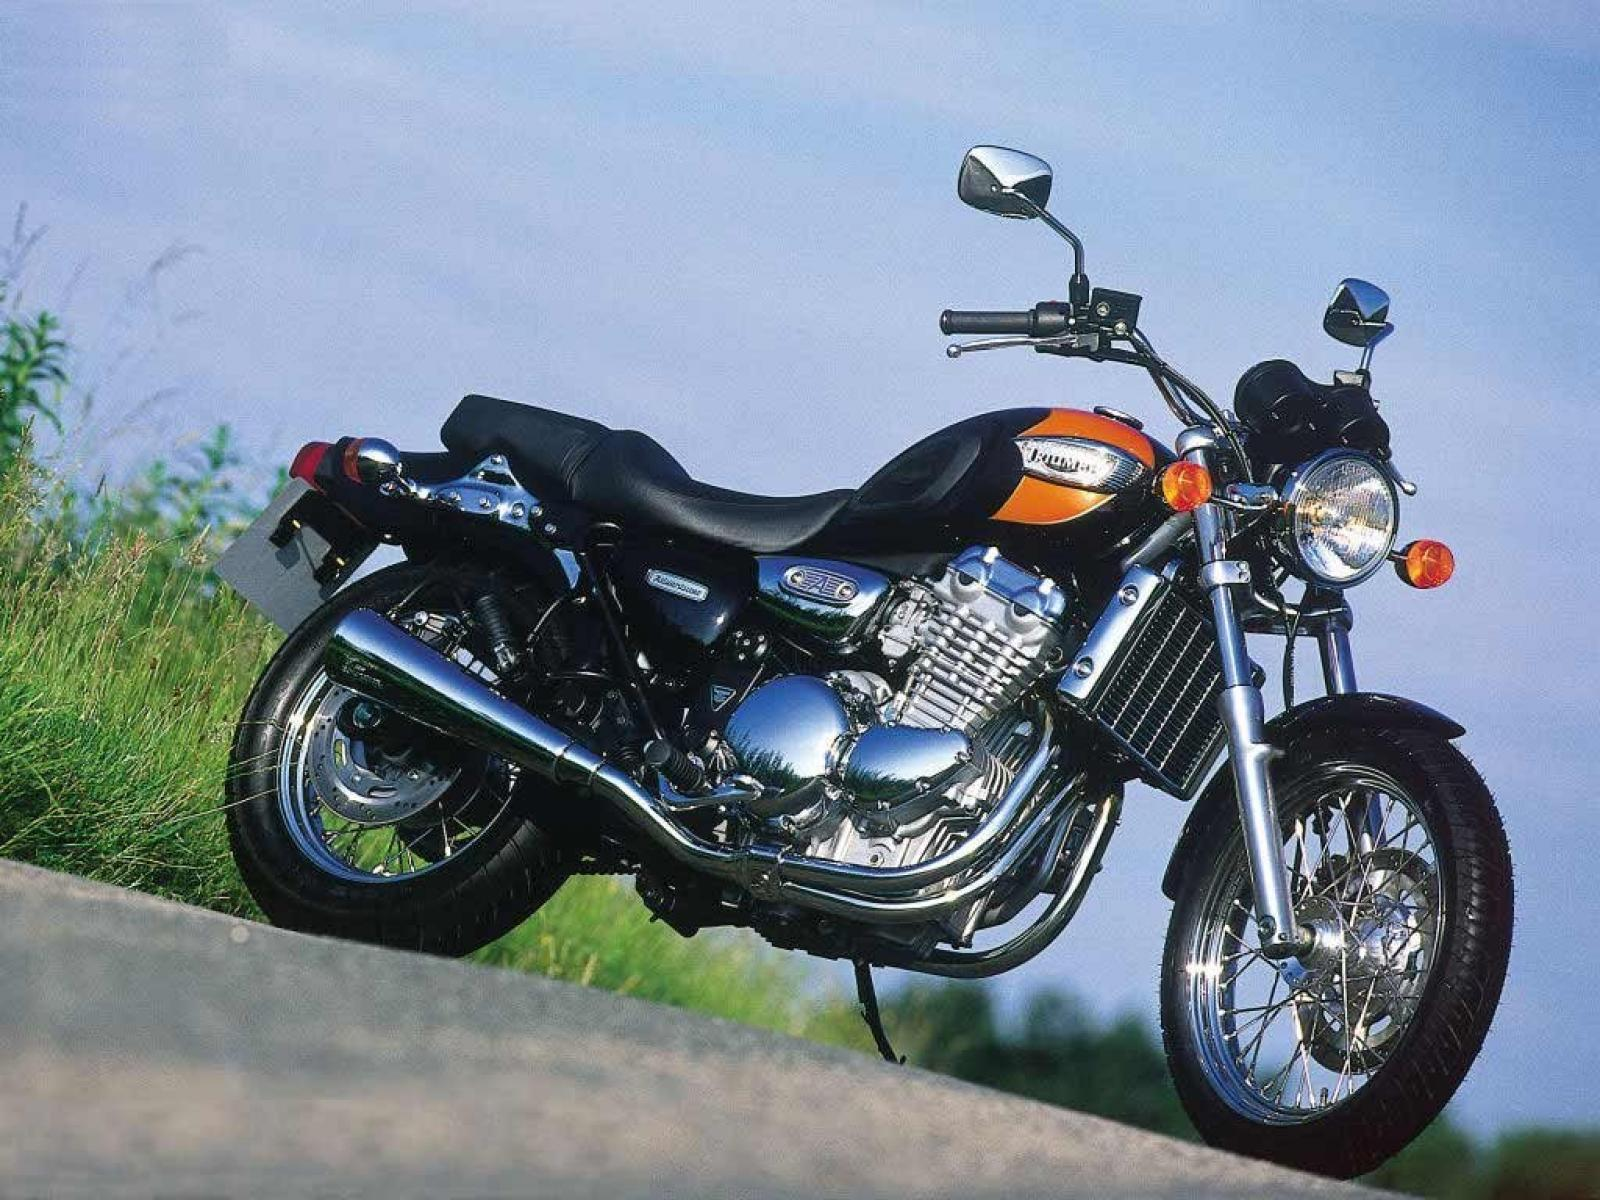 Triumph Adventurer 2001 images #159335